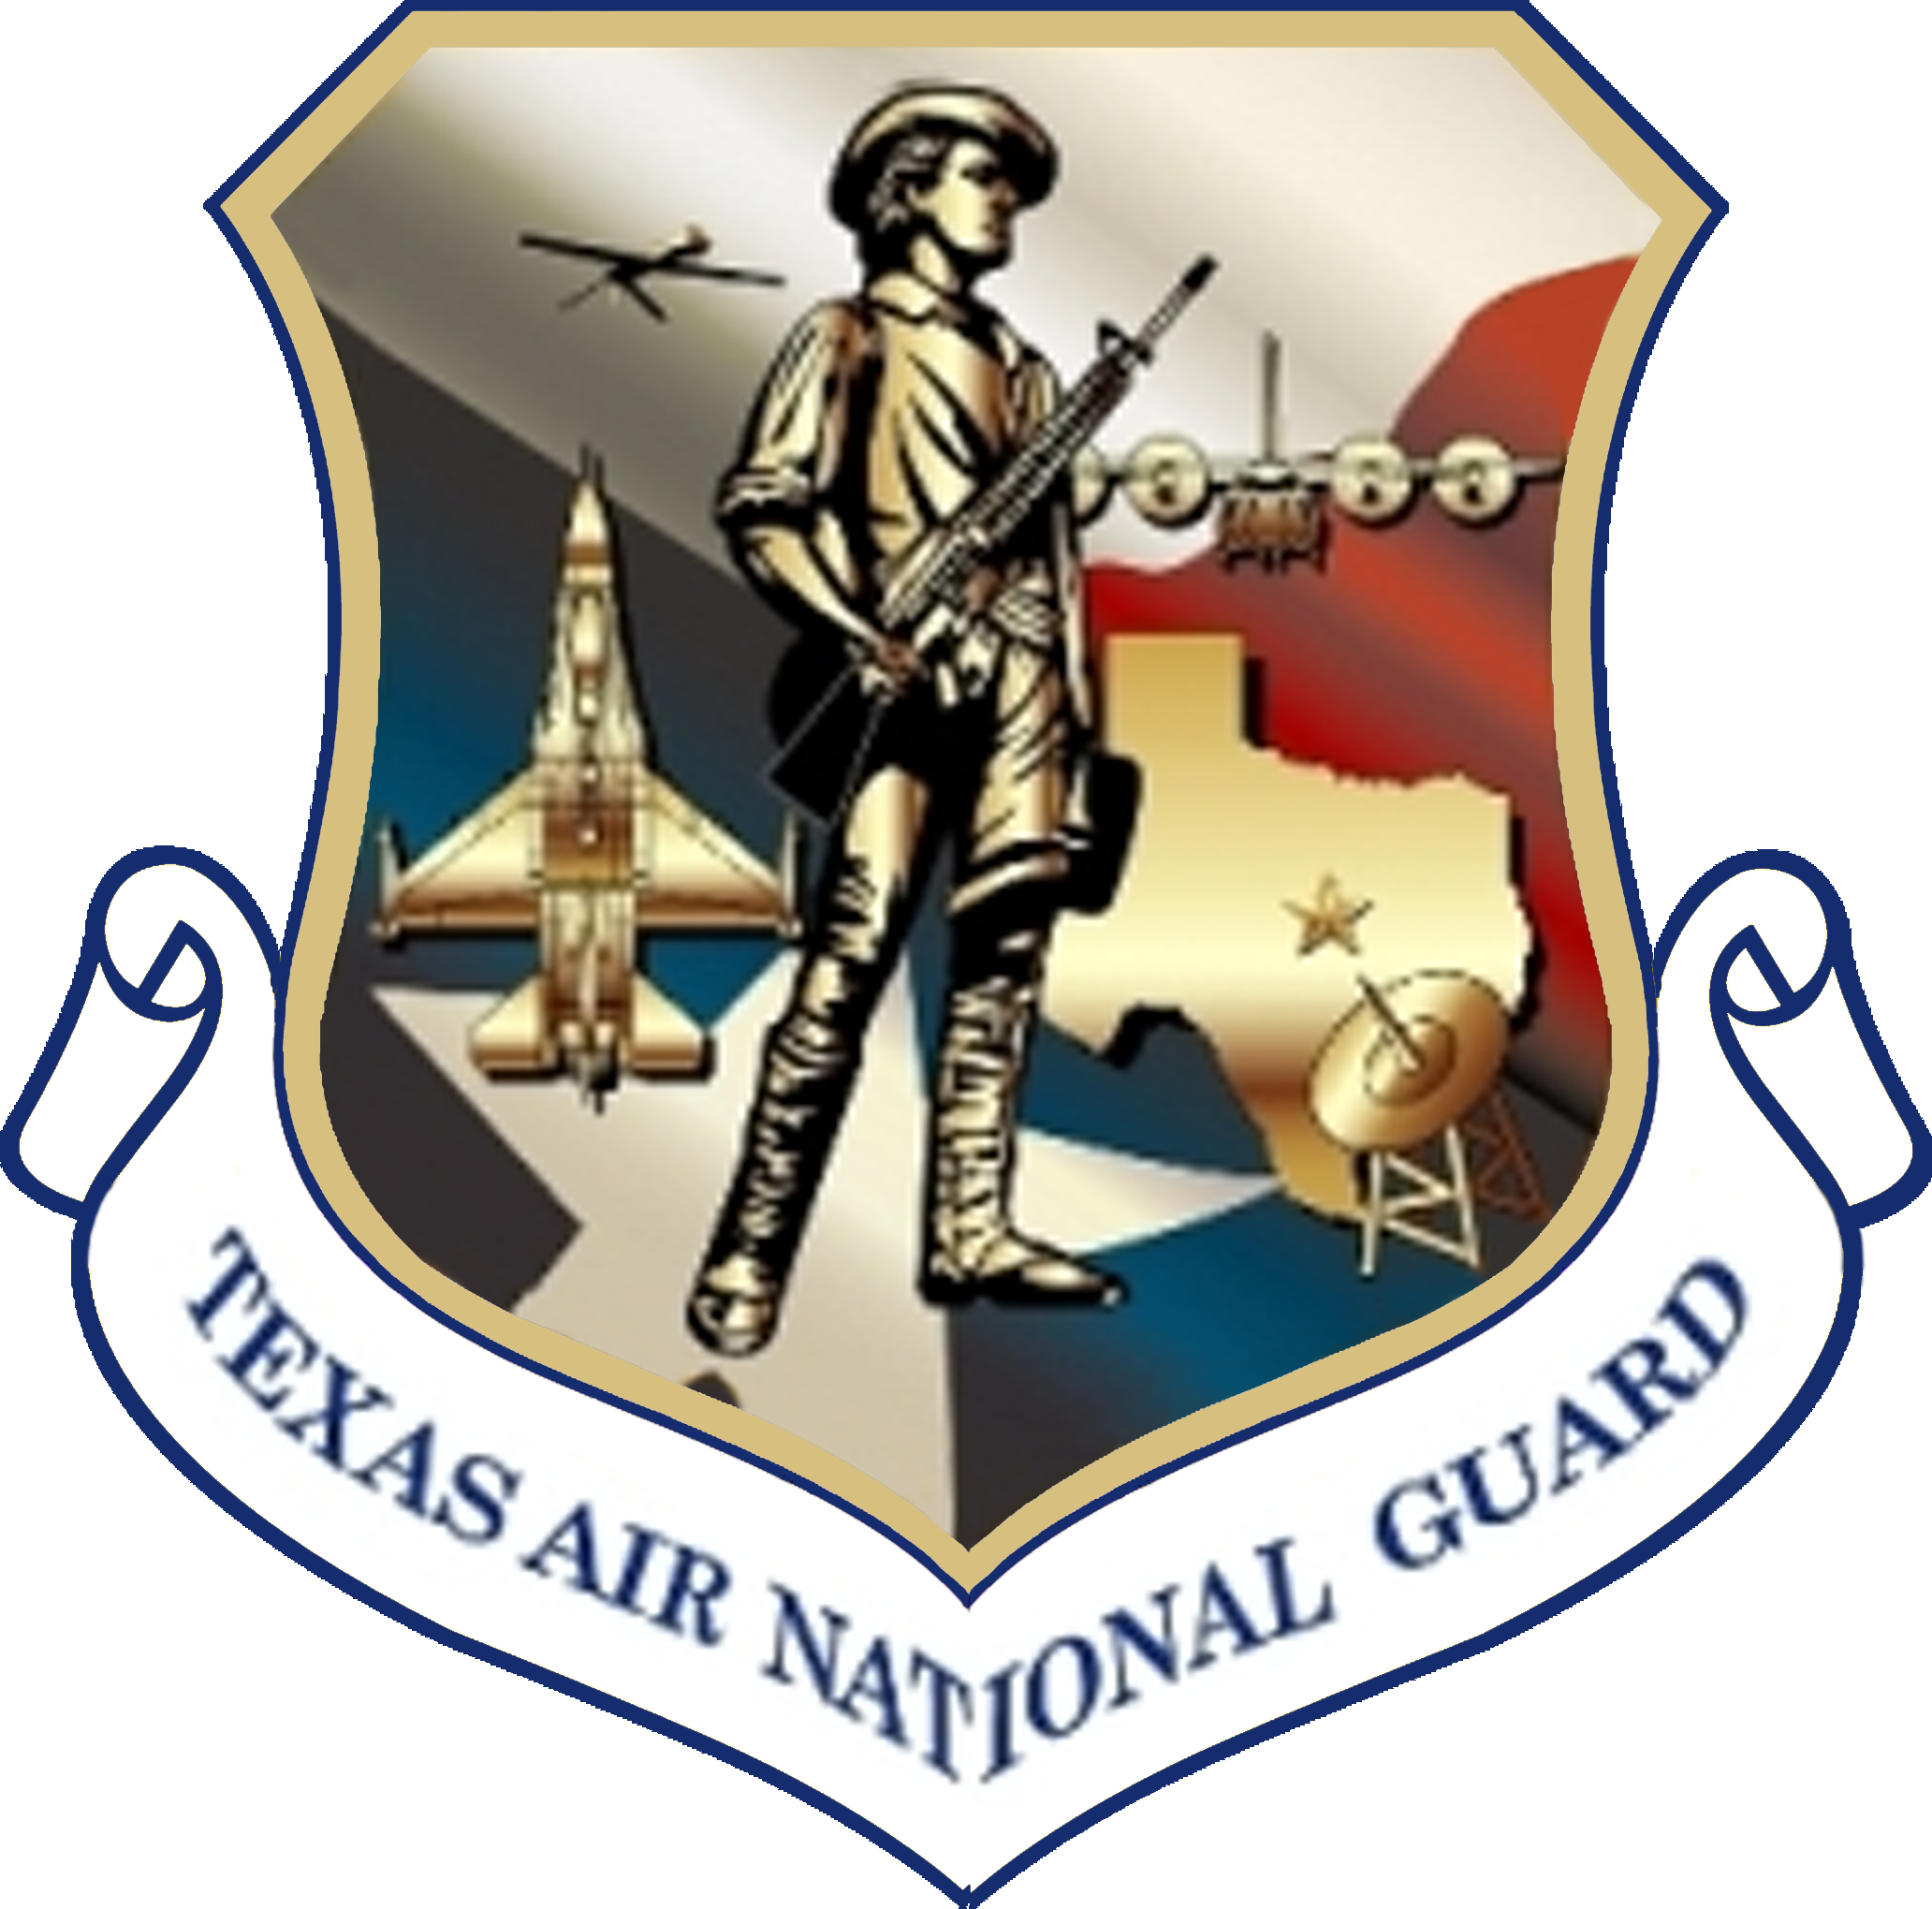 Air national guard png. File texas patch wikimedia